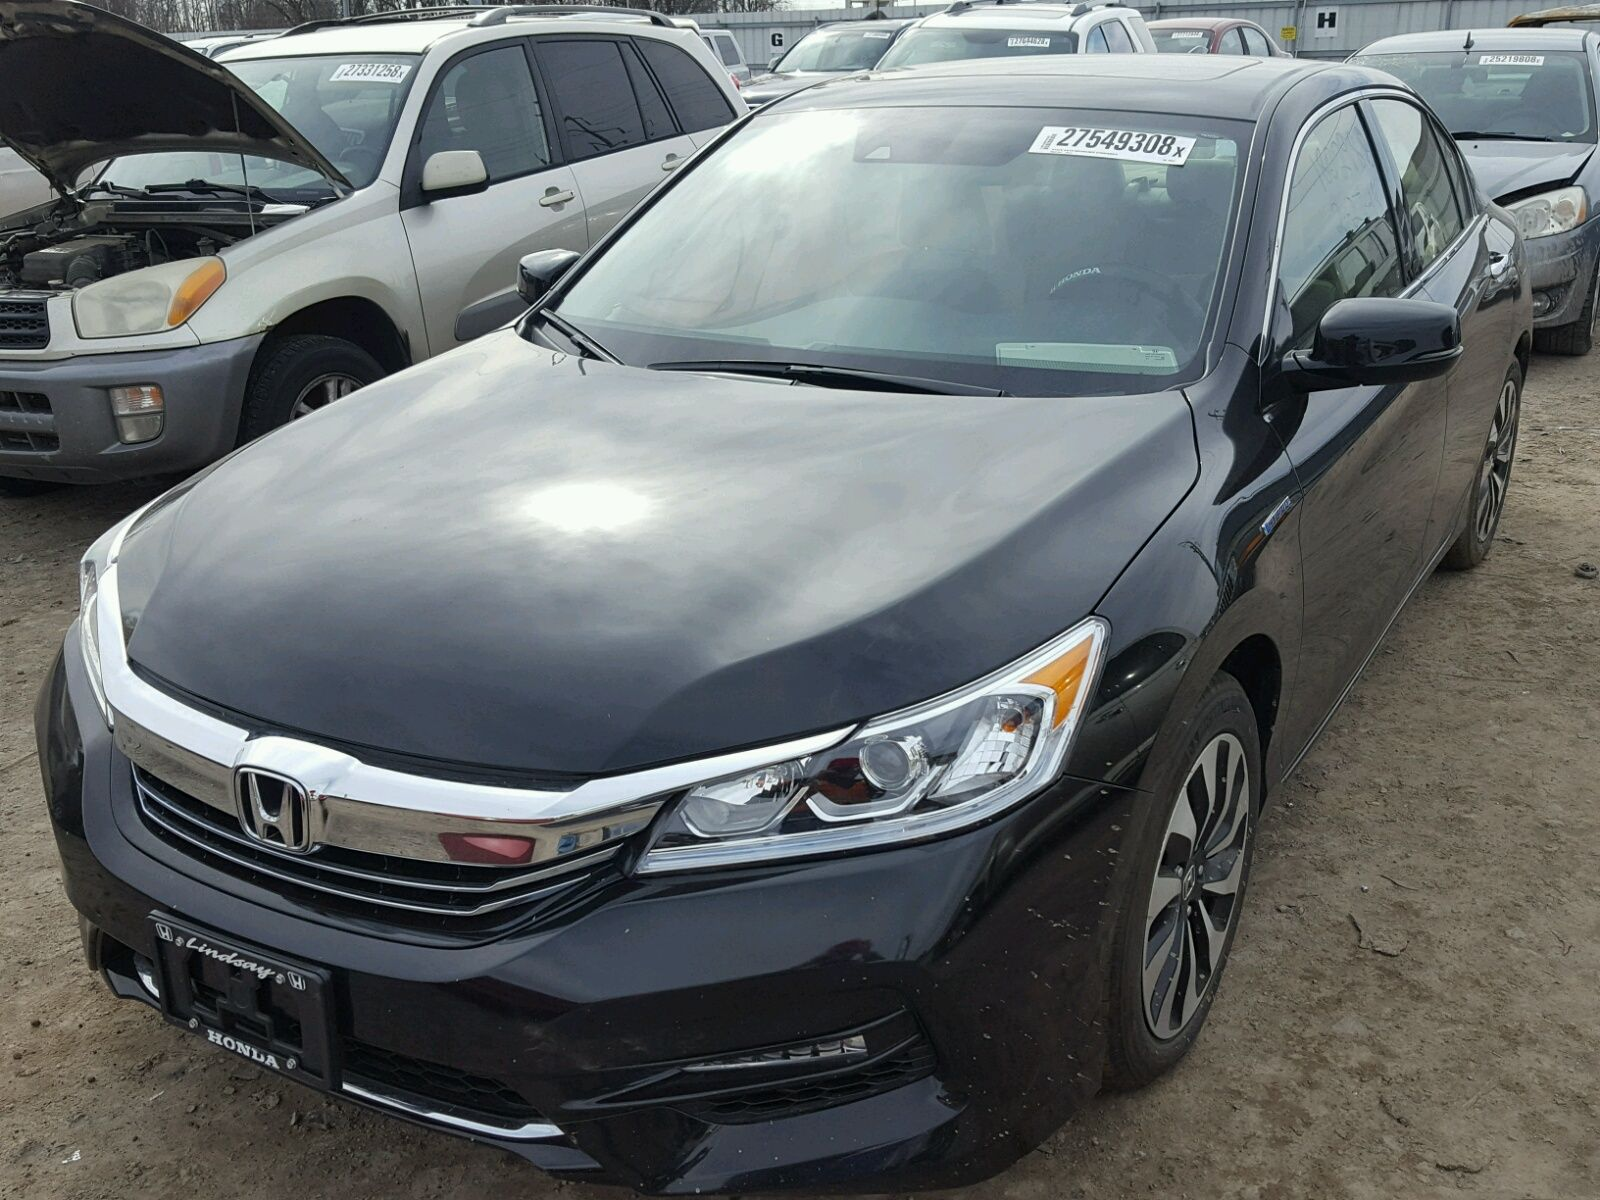 2017 #HONDA #ACCORD HYB 2.0L for Sale at #Copart Auto Auction. Place ...